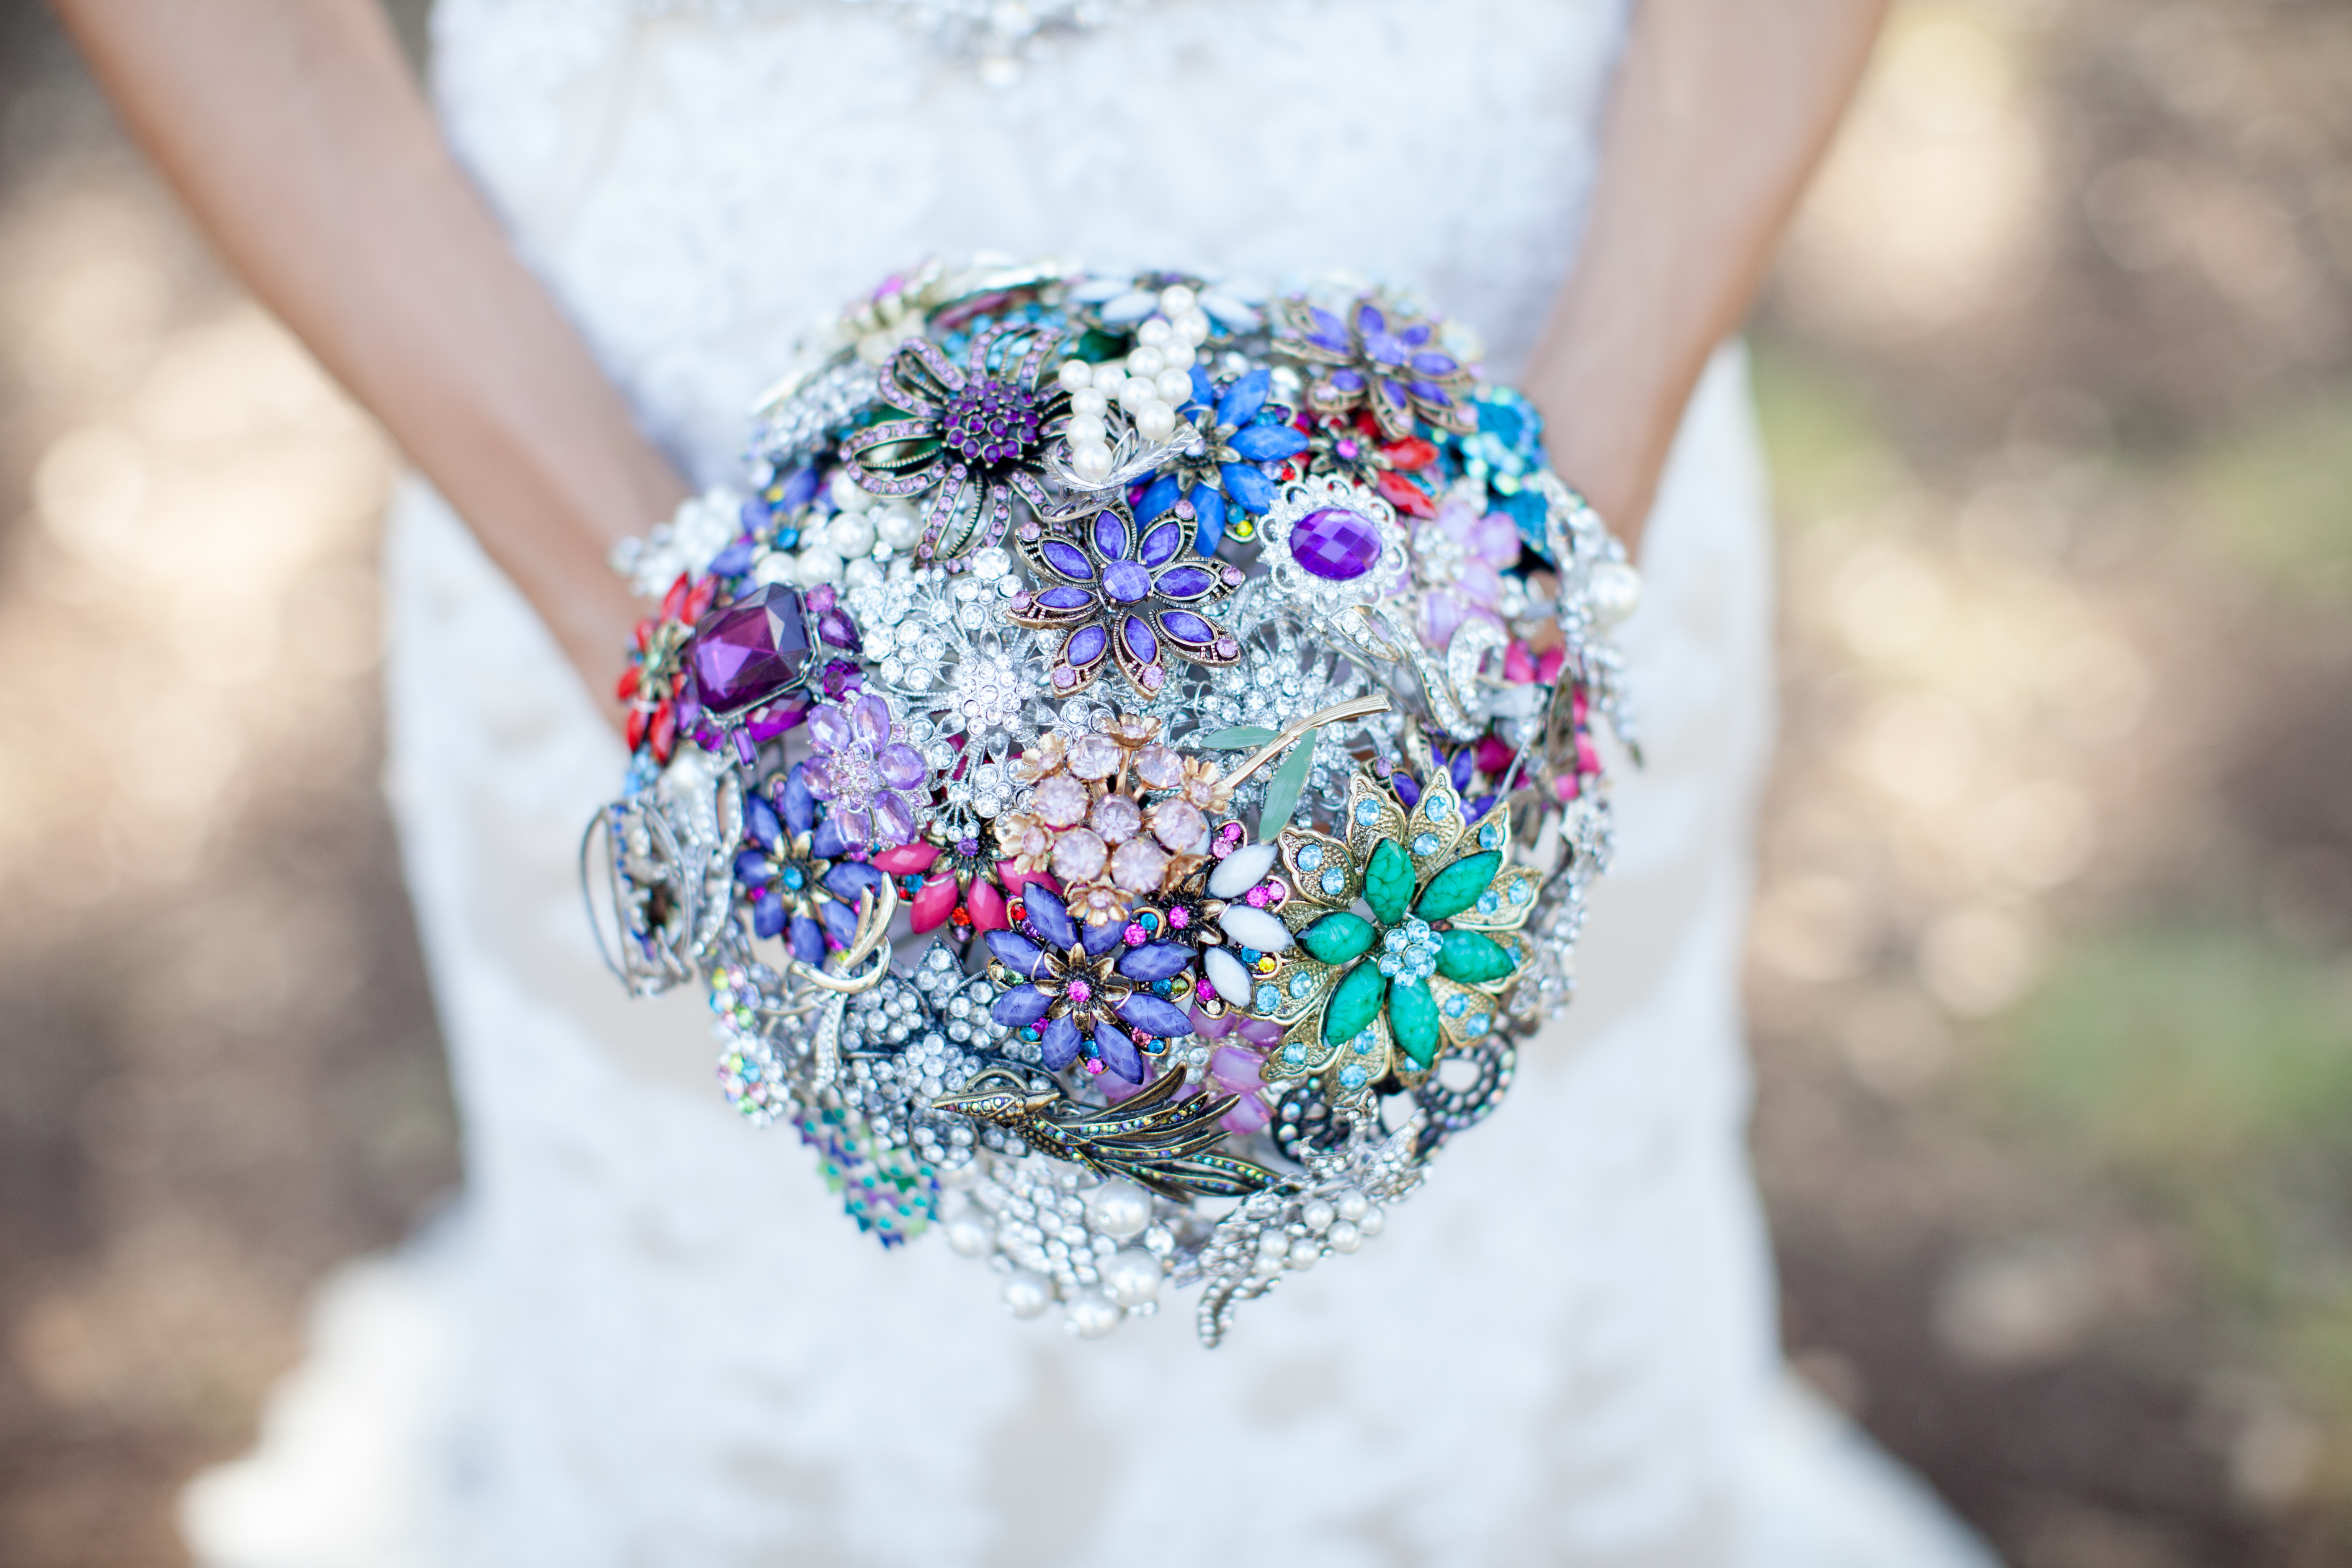 Shohreh's hands holding her colorful brooch bouquet with brooches of different shapes and sizes